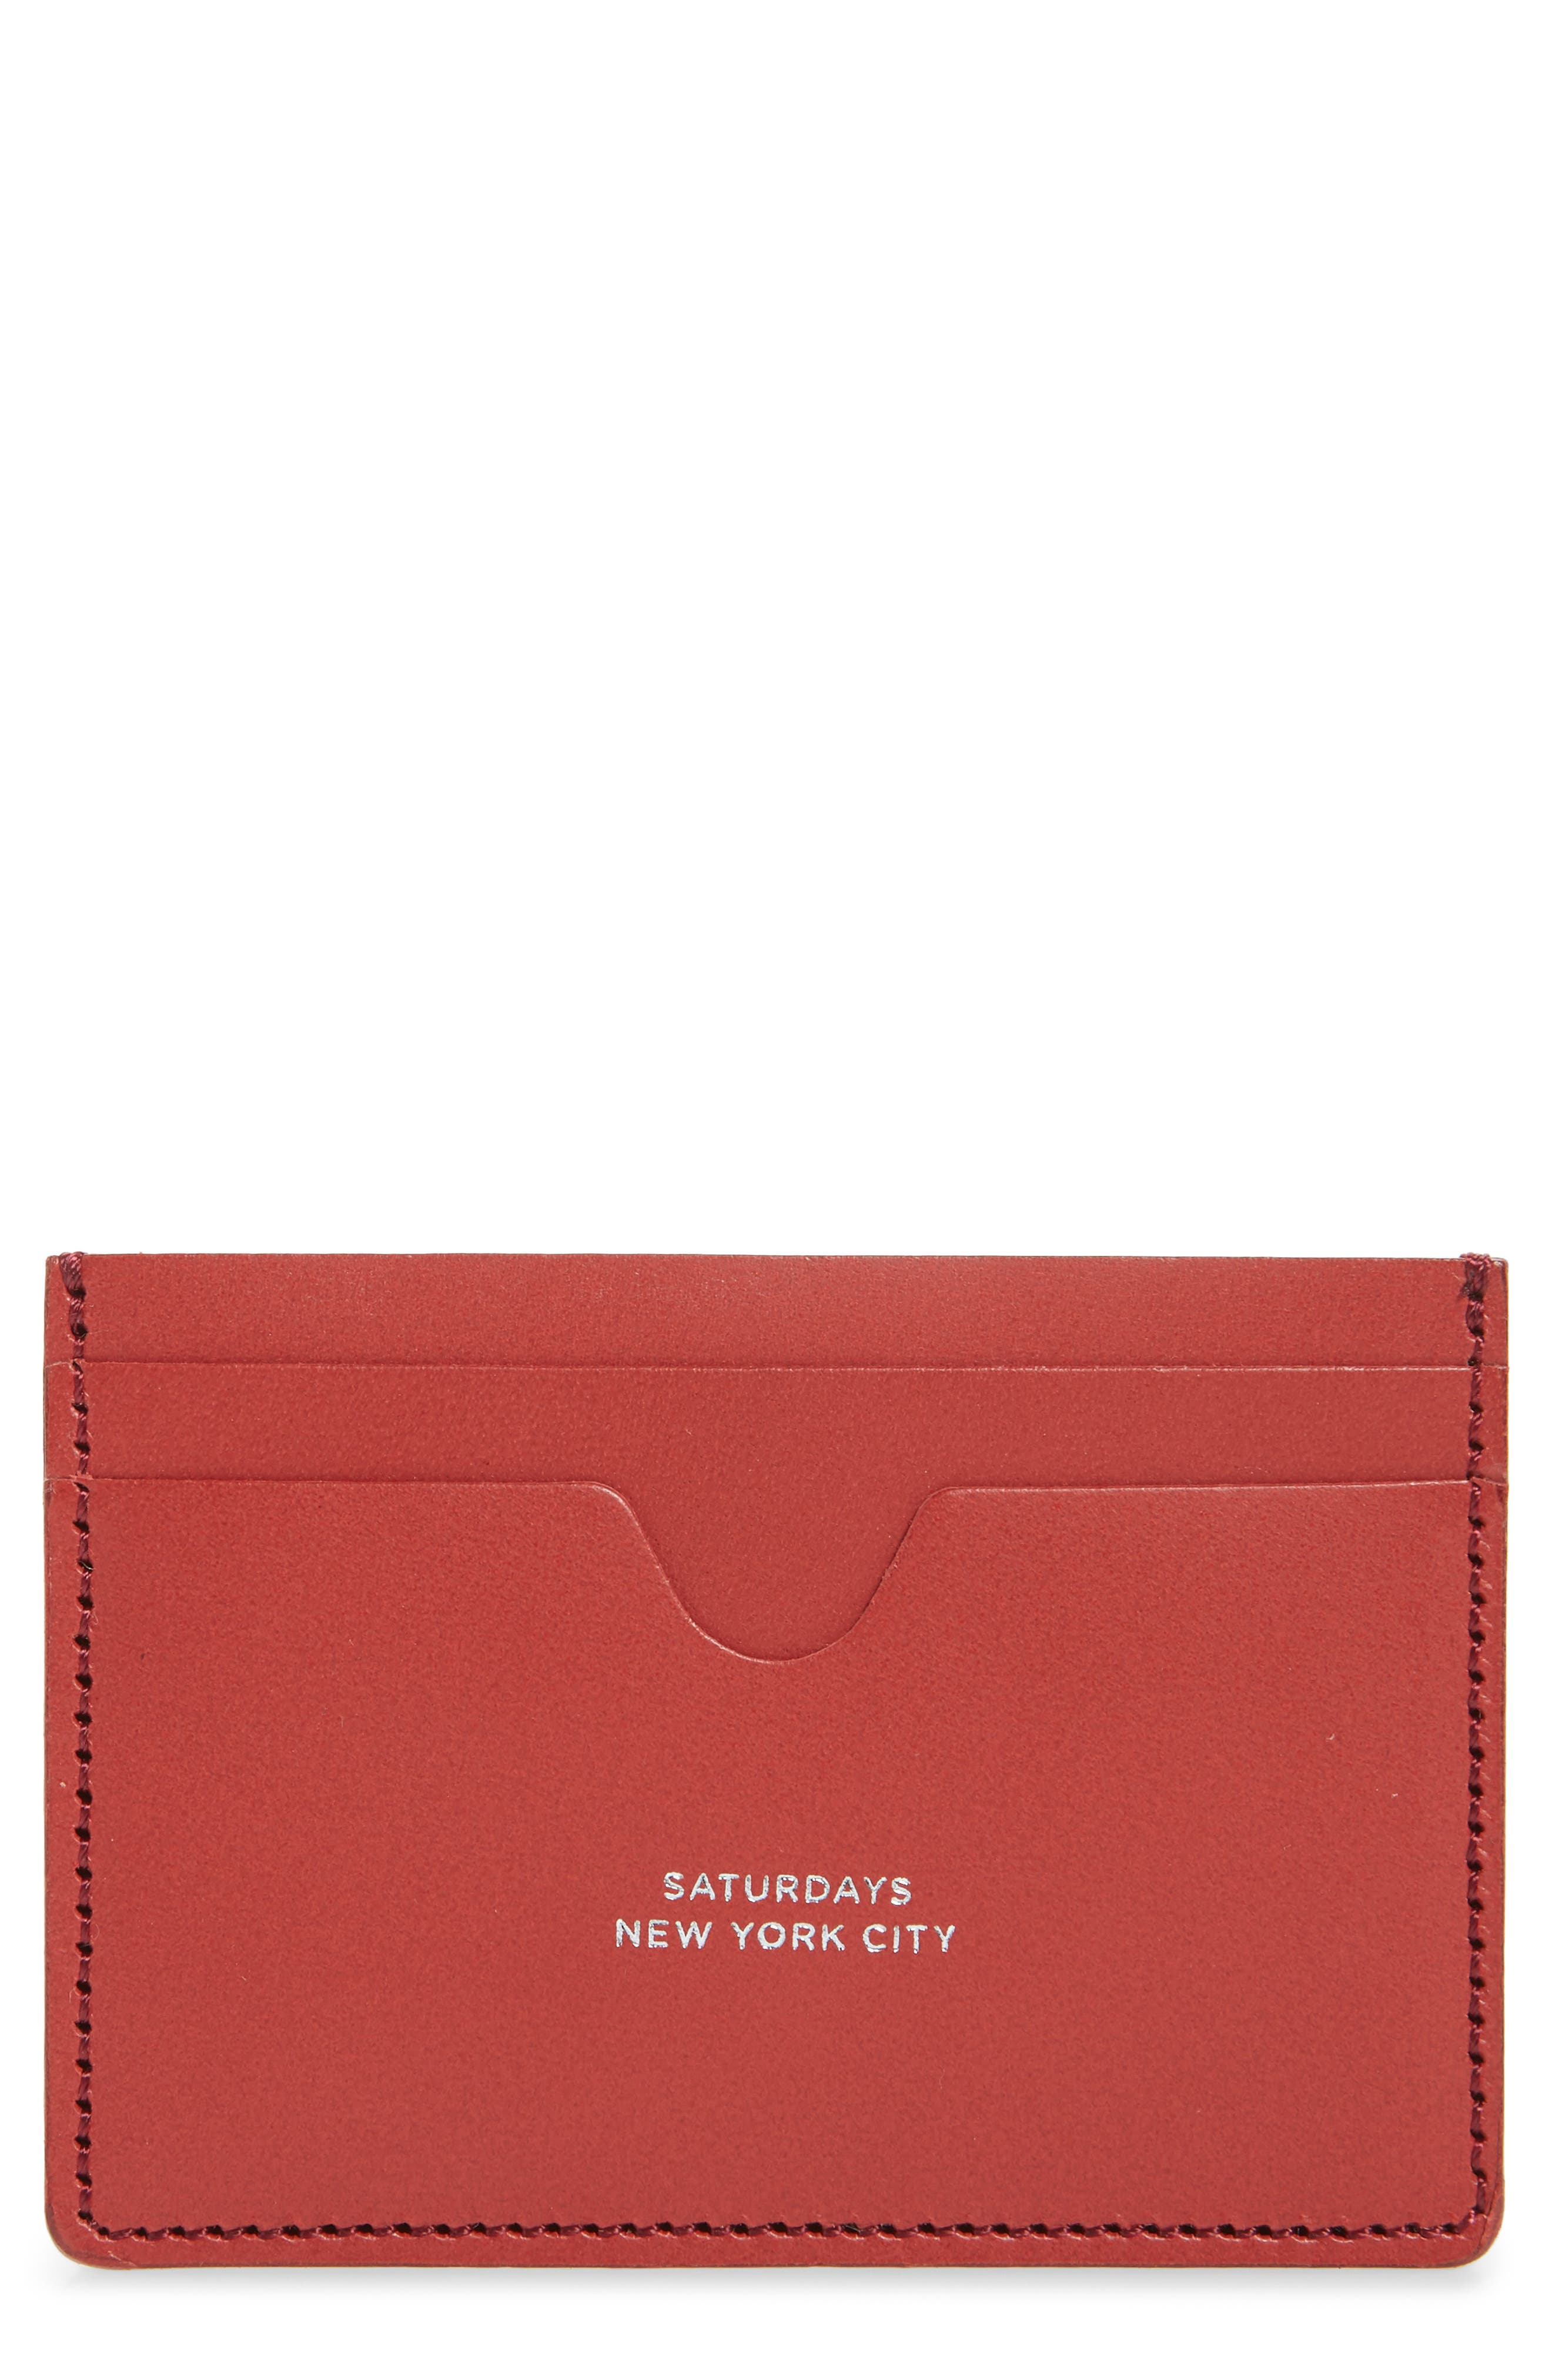 SATURDAYS NYC Ryan Leather Card Case, Main, color, TRUE RED